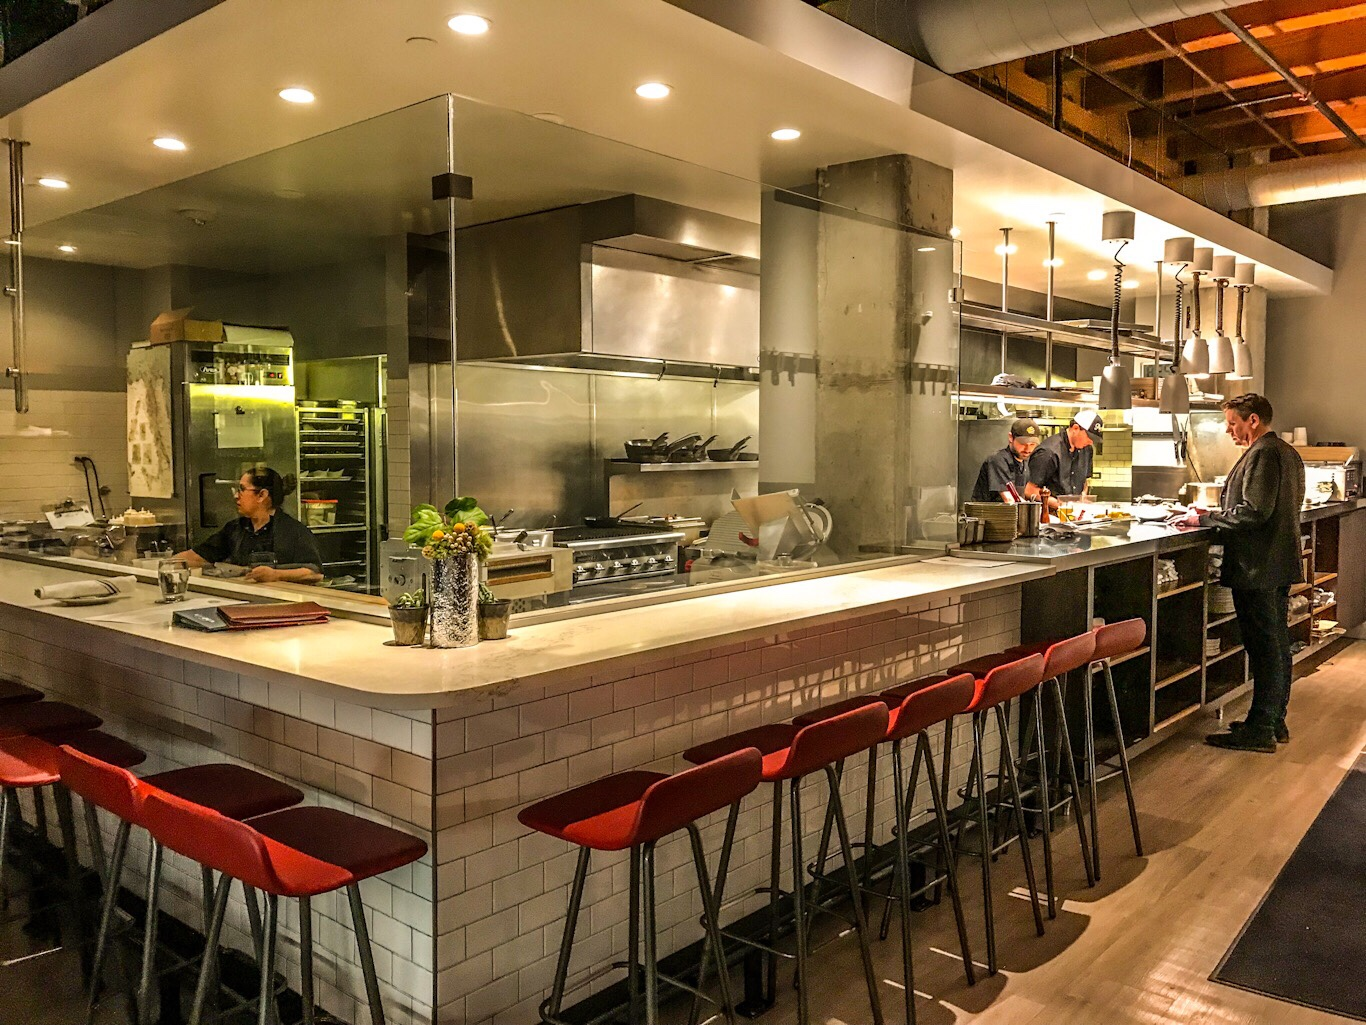 The Pasta Chefs Counter at Chow Morso Osteria in lower downtown Denver, CO